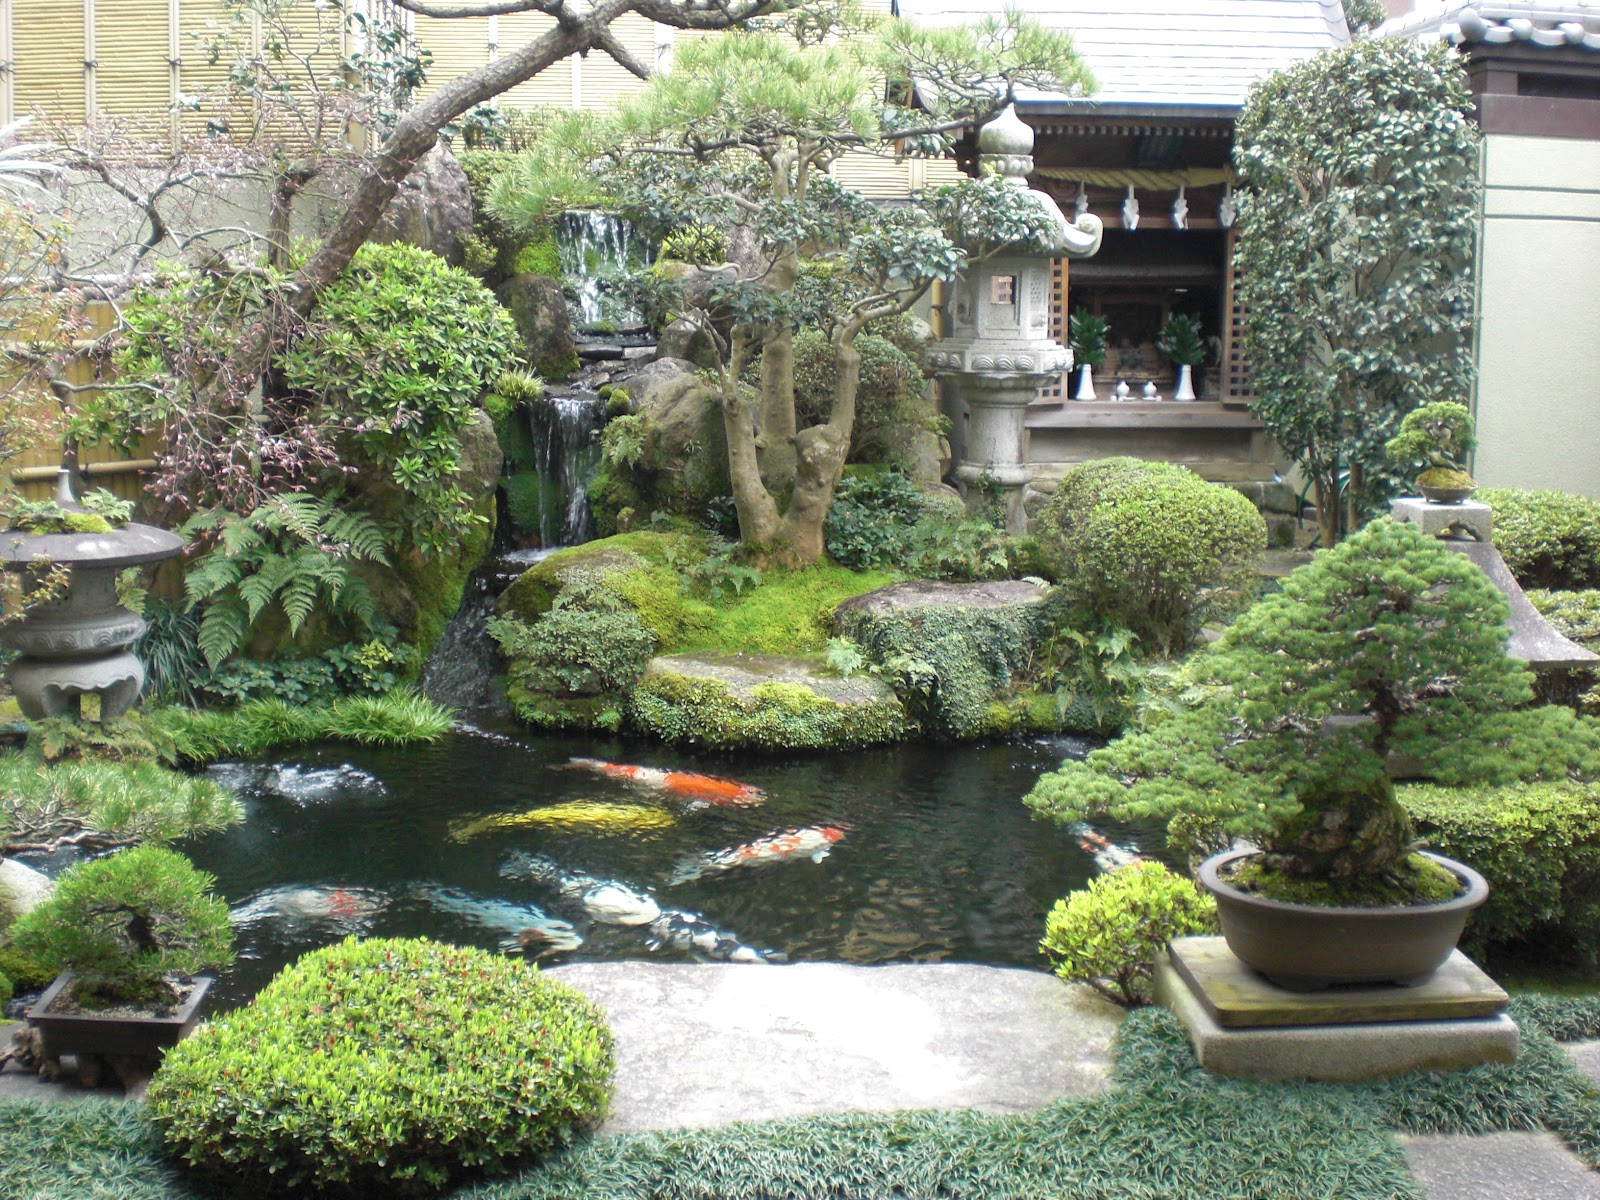 Another japanese treat momiji cookies mozakerat doctor blog for Japanese koi pond garden design